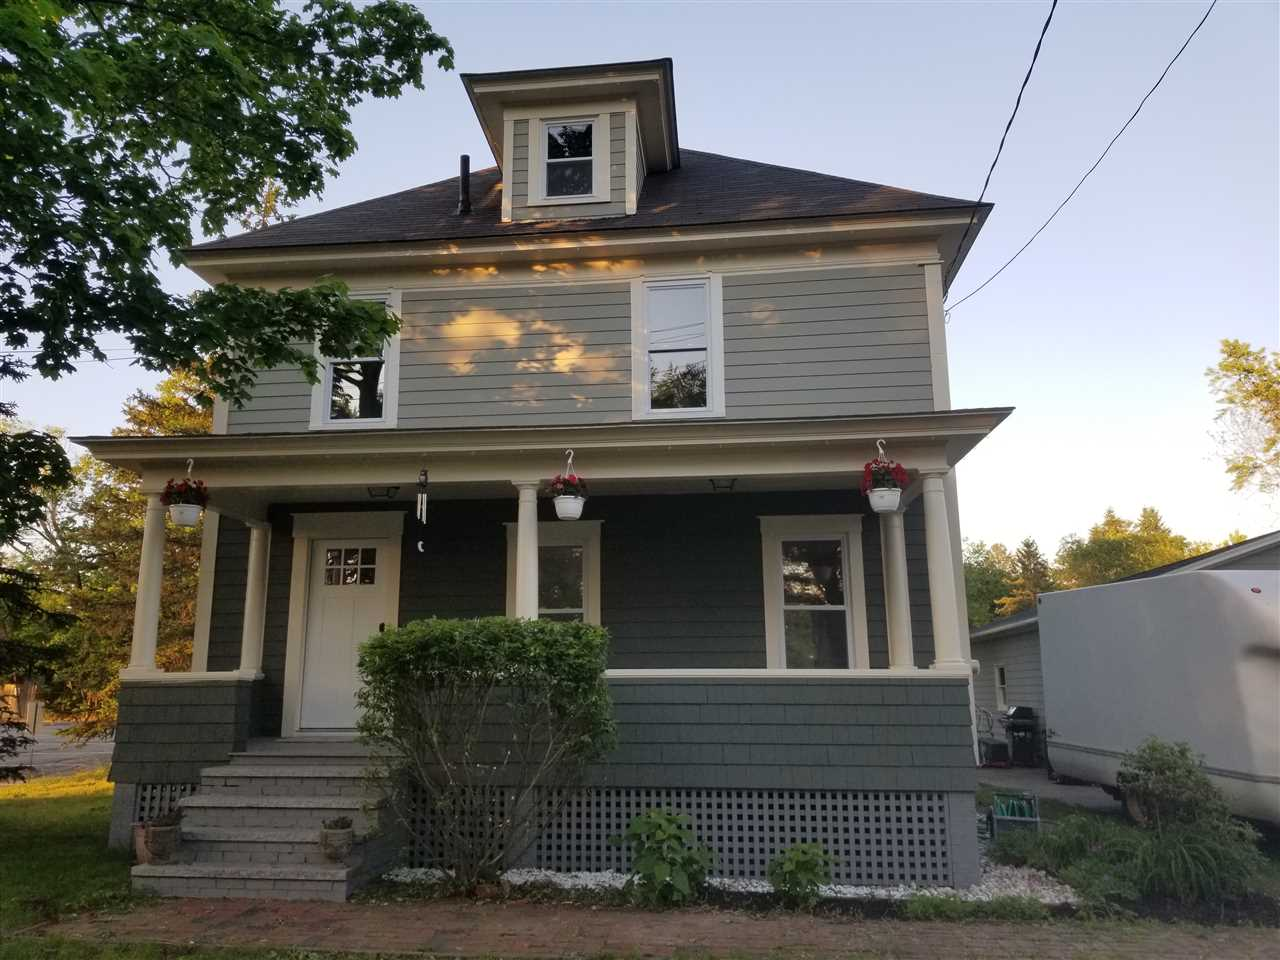 Photo of 9 Grover Street Concord NH 03301